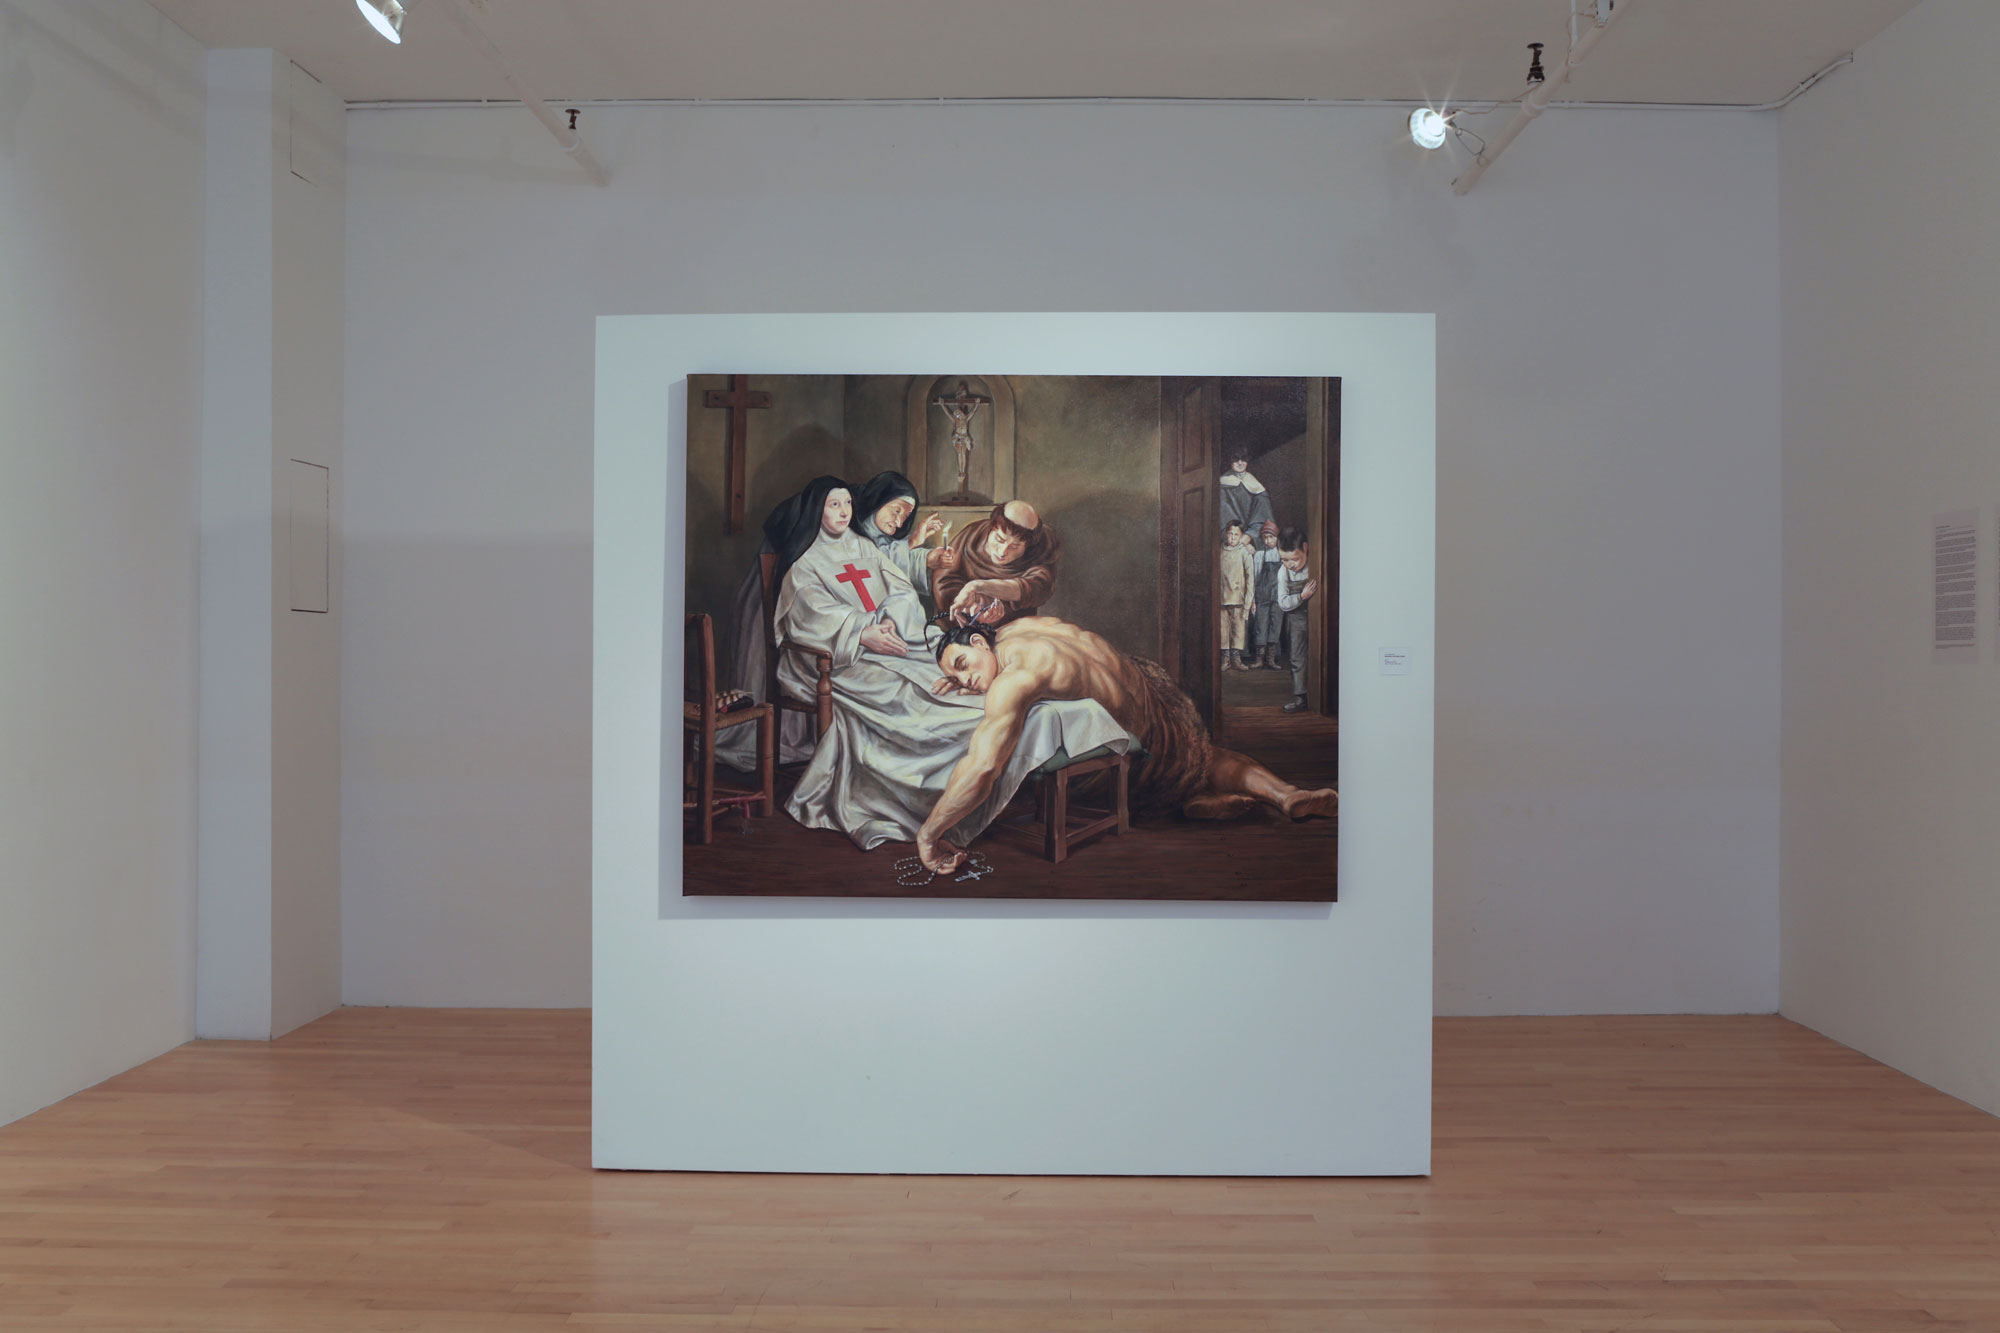 No Homo: Art, Assistants and Emulation at pfoac221, Curated by Kent Monkman